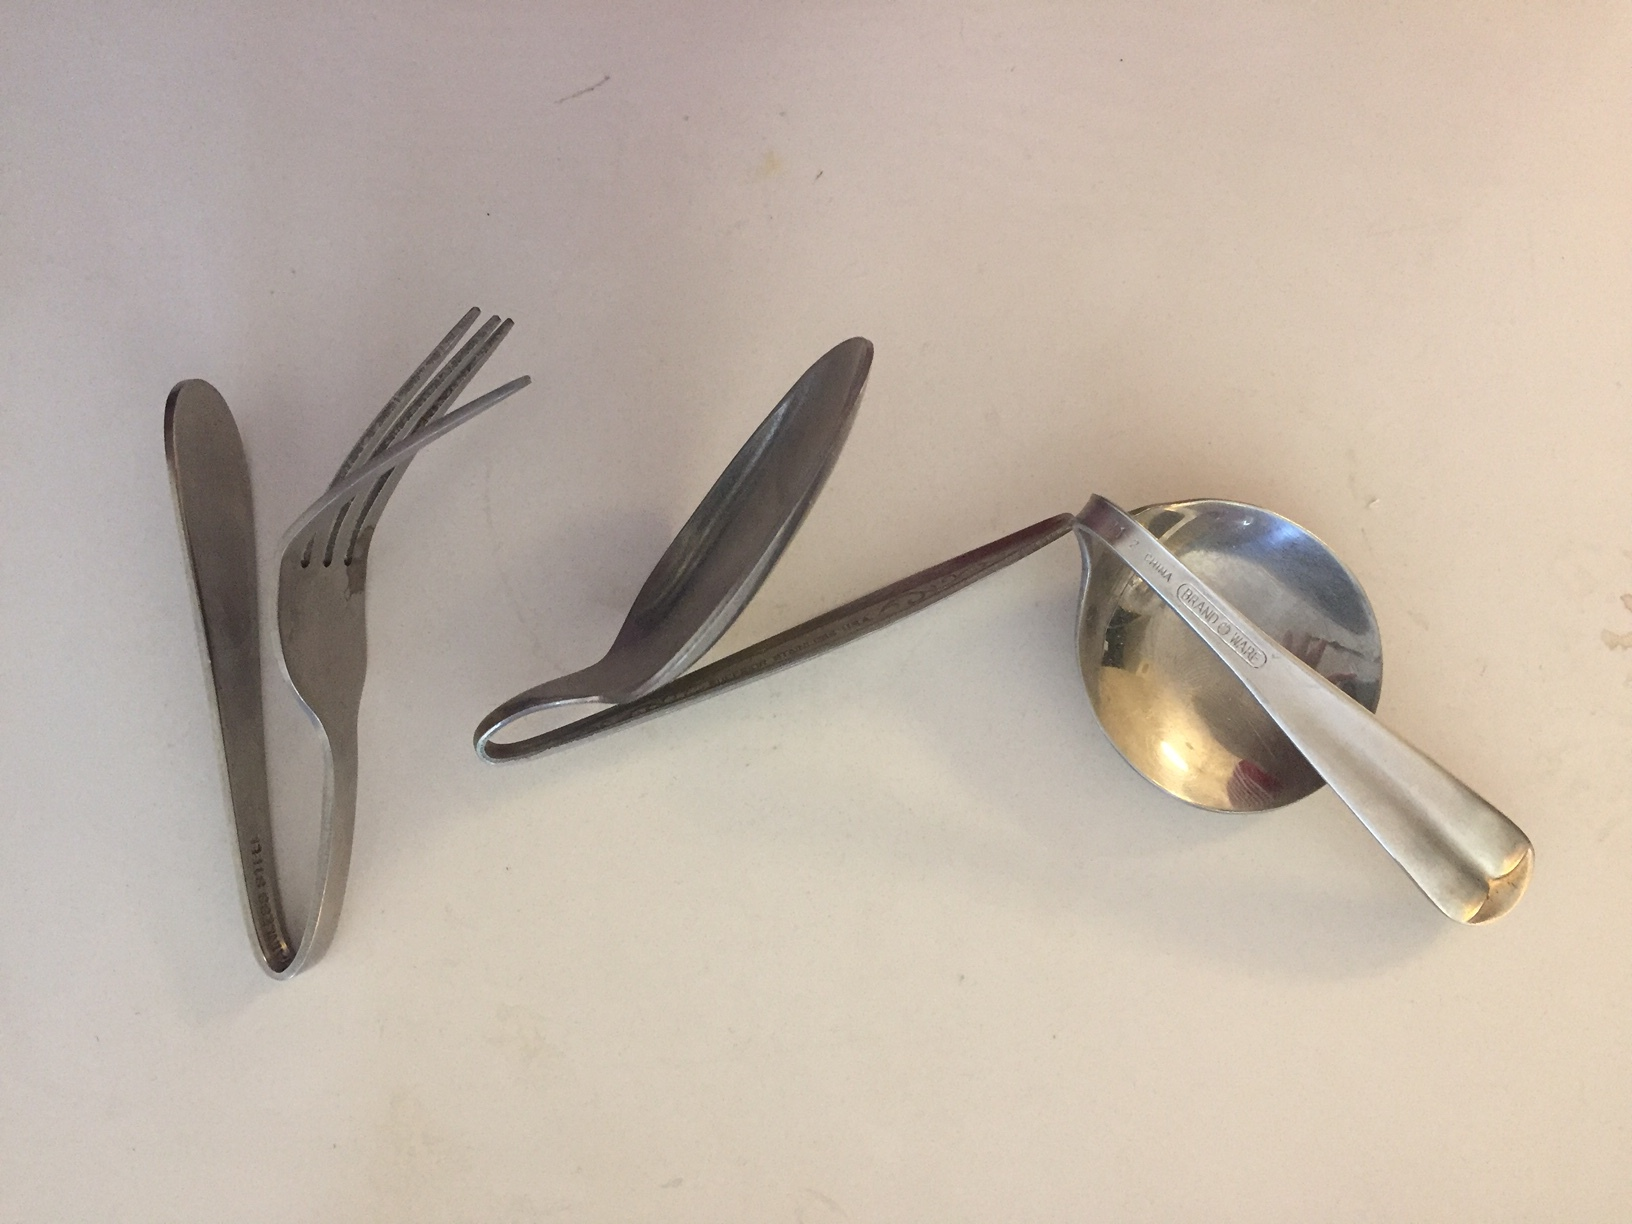 Photo: Actual spoons and a fork bent by Dallisa and Rose in Sedona, AZ